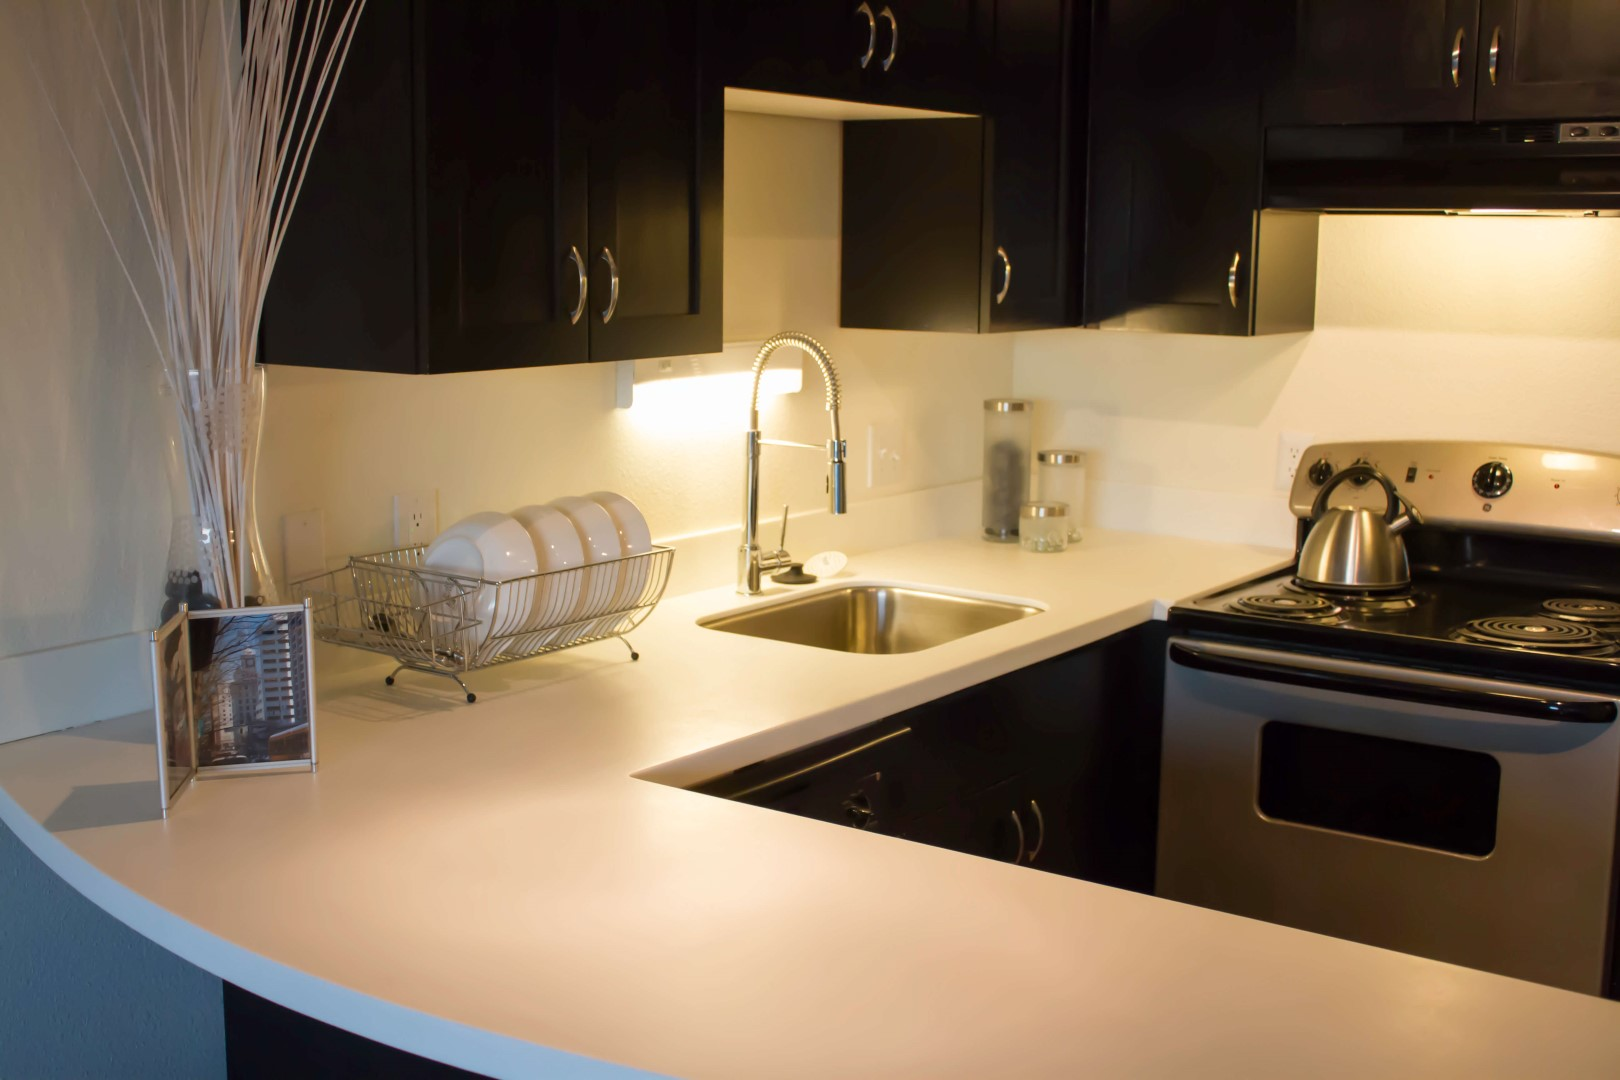 Affordable Solid Surface Countertops Solid Surfaces Gallery Providing Quality At An